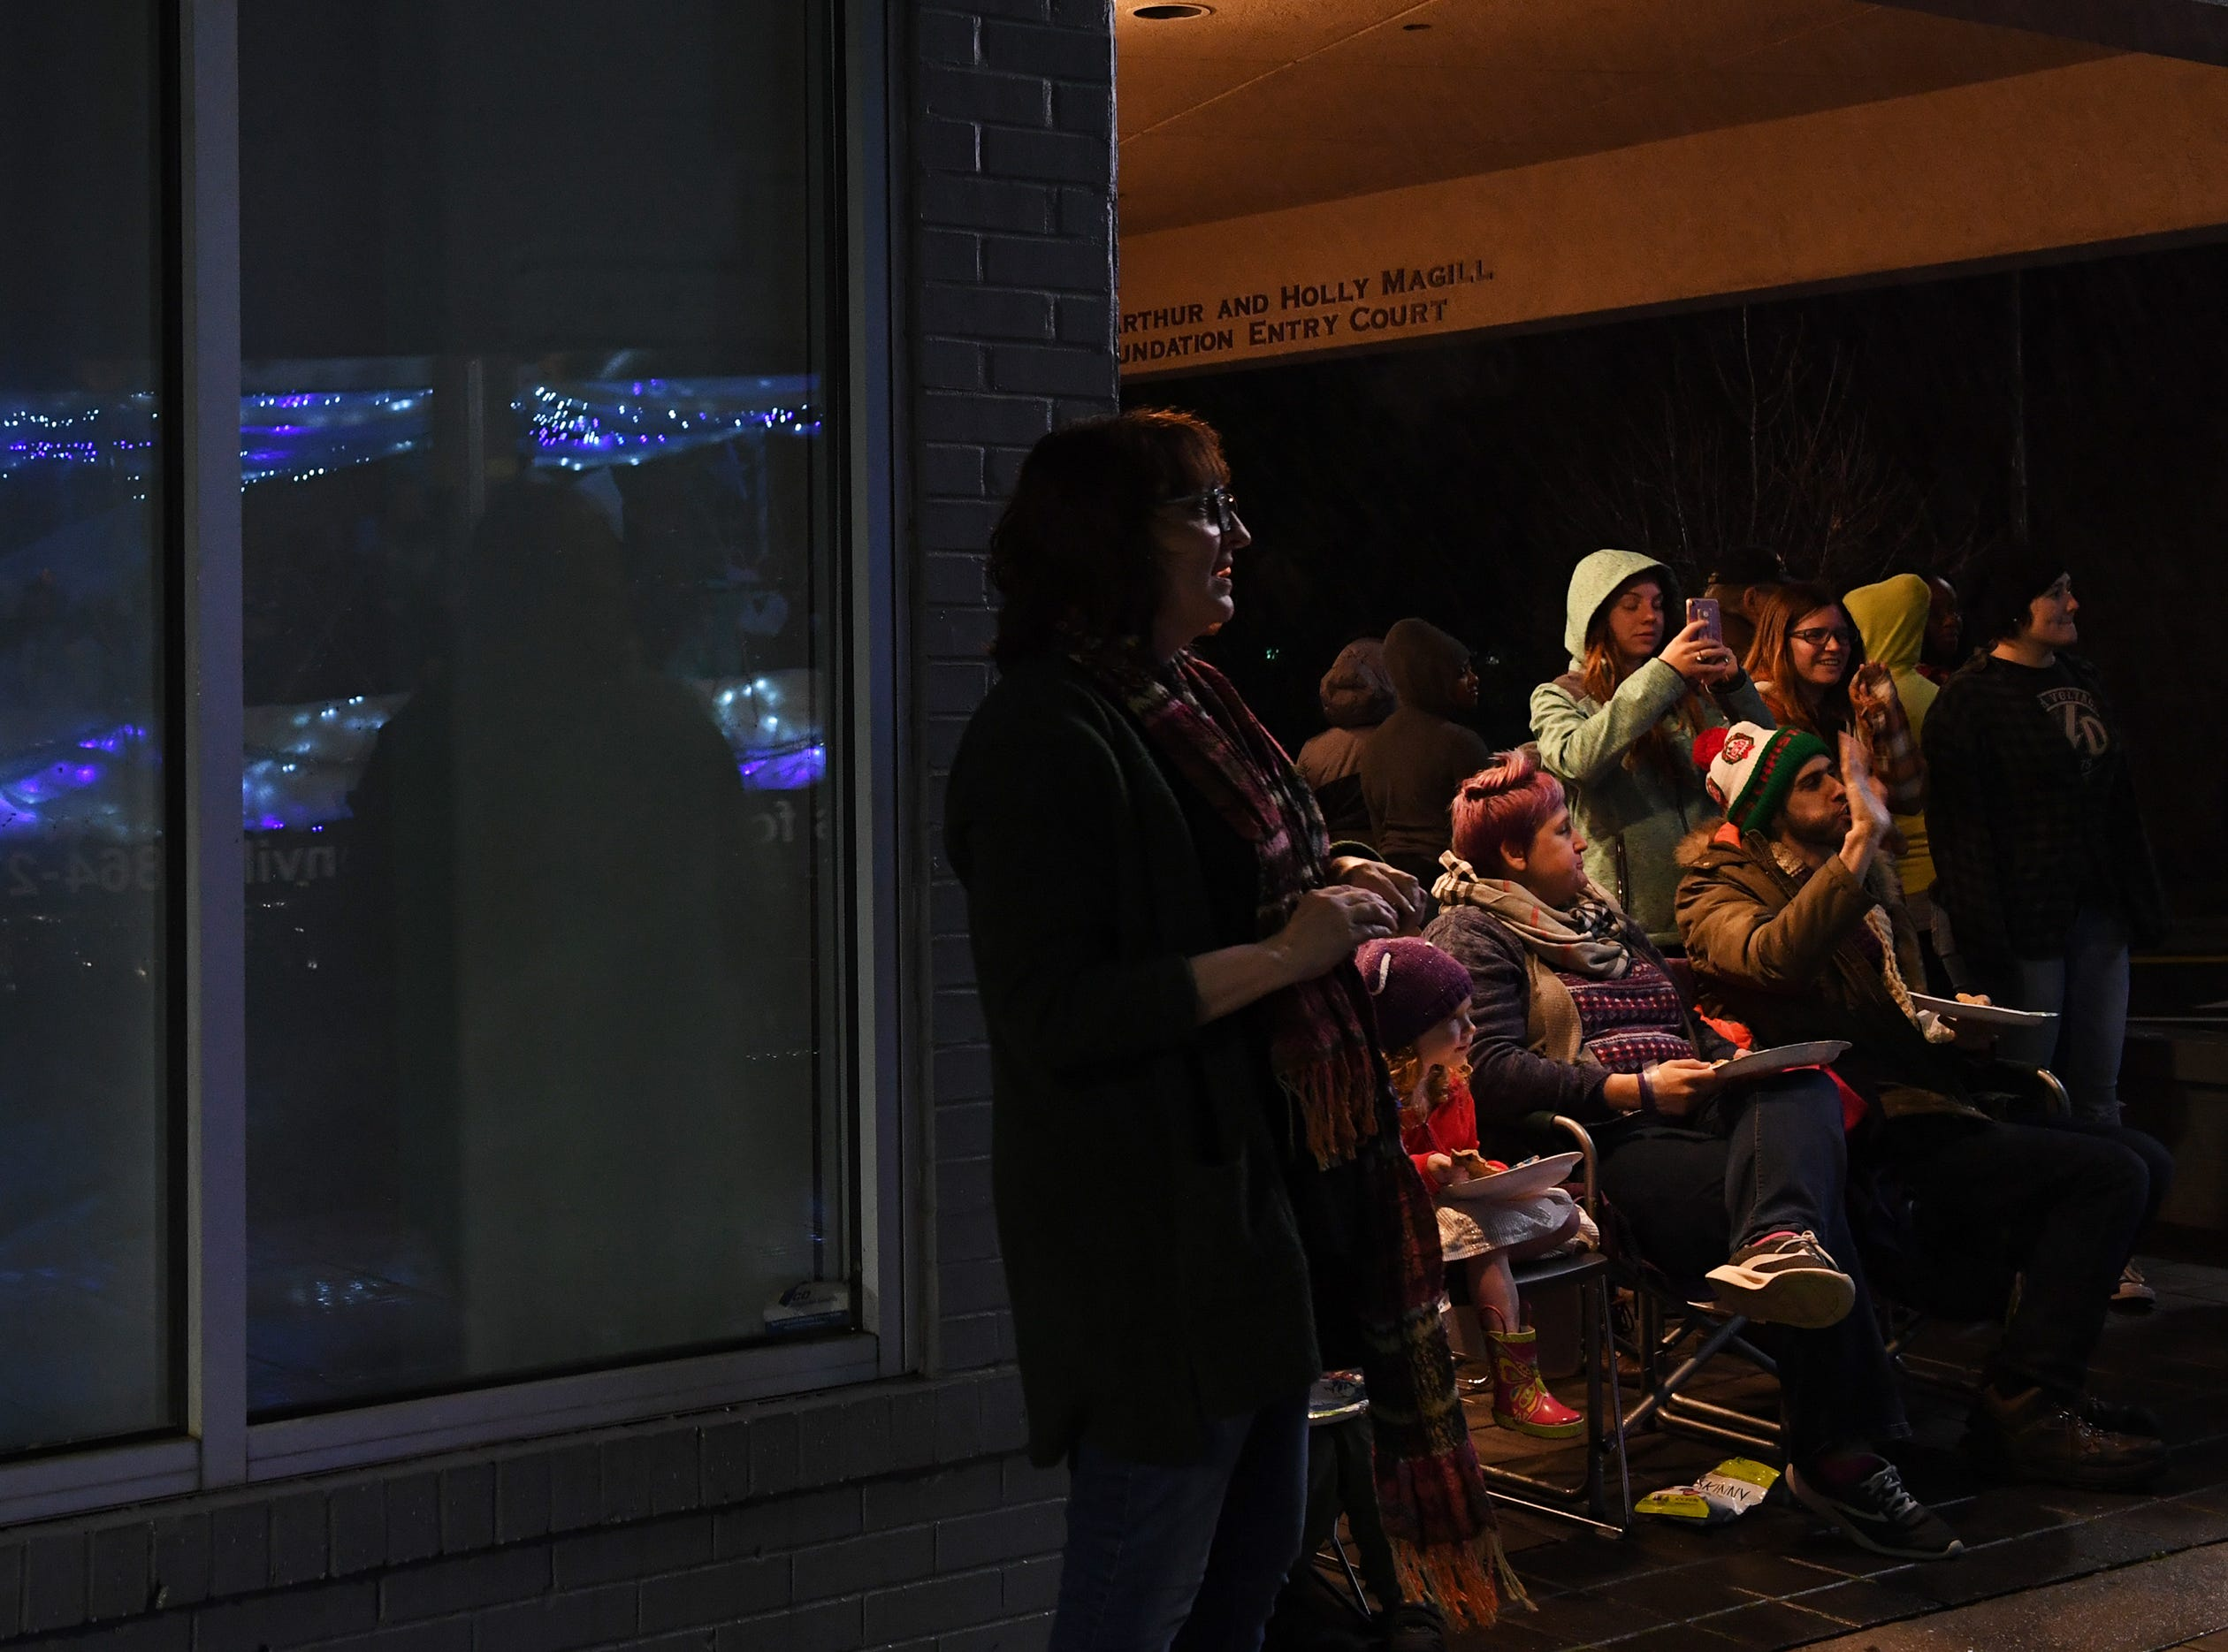 Crowds gathered inside and outside restaurants and under overhangs to keep dry during the Greenville Poinsettia Christmas Parade Saturday, Dec. 1, 2018 in downtown Greenville.